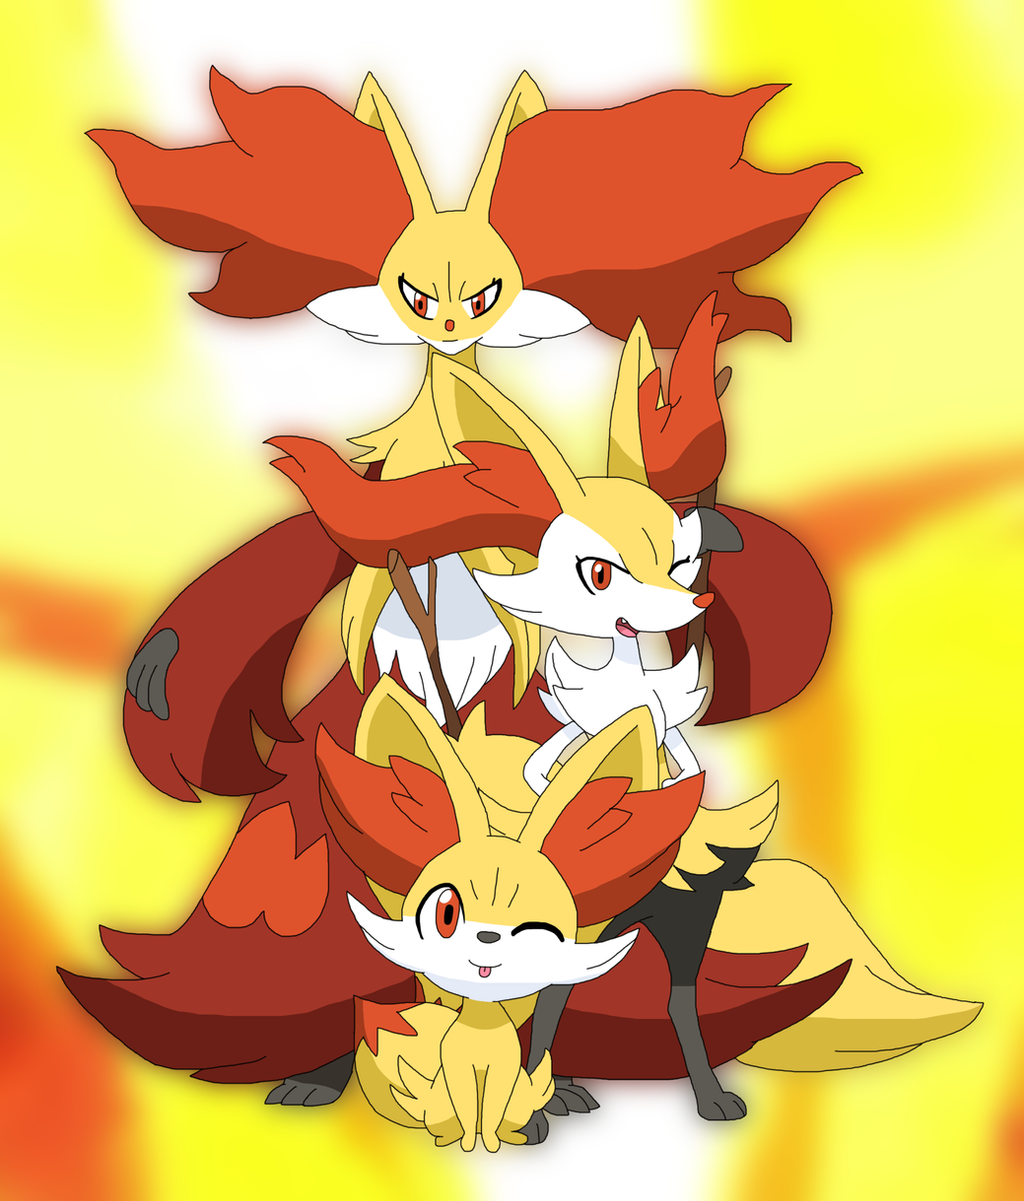 Flaming Foxes by Cansin13Art